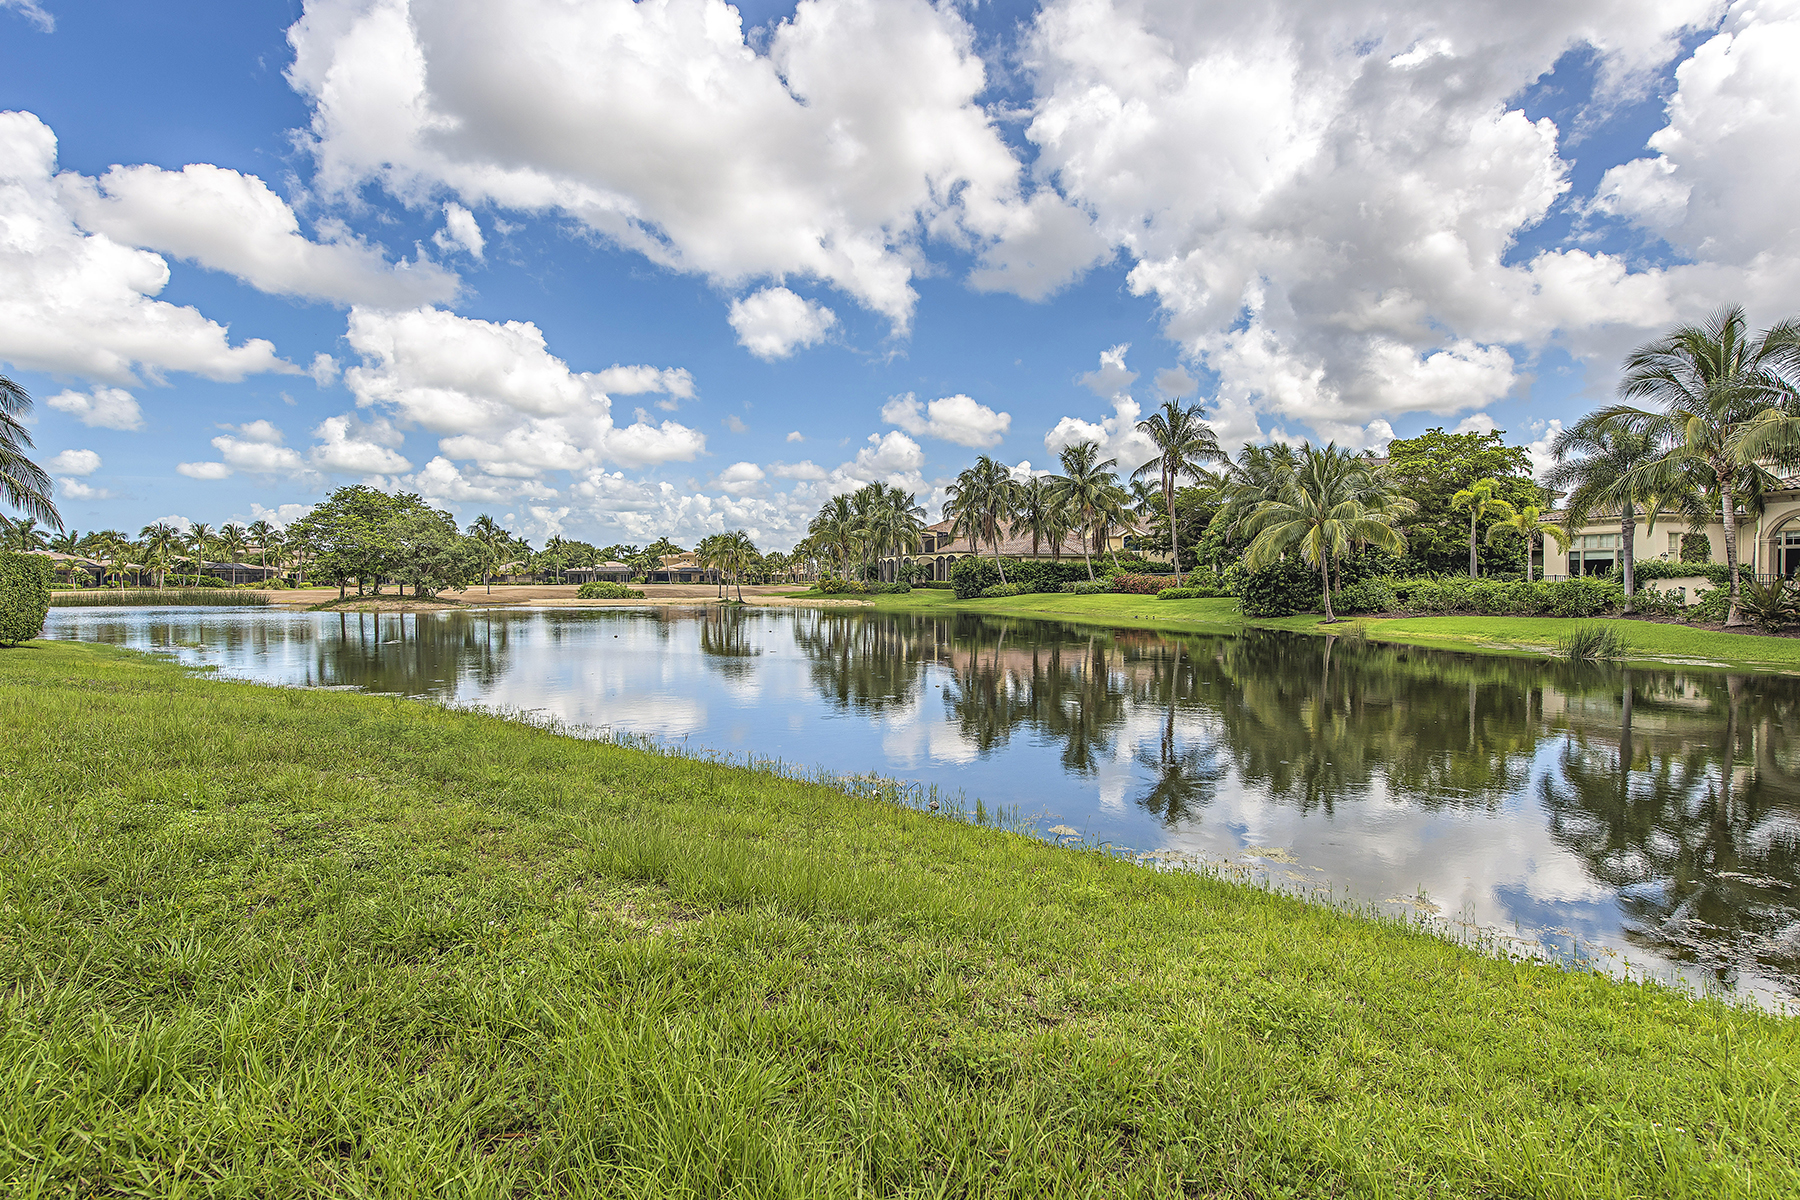 Land for Sale at Naples 1829 Plumbago Ln Naples, Florida, 34105 United States